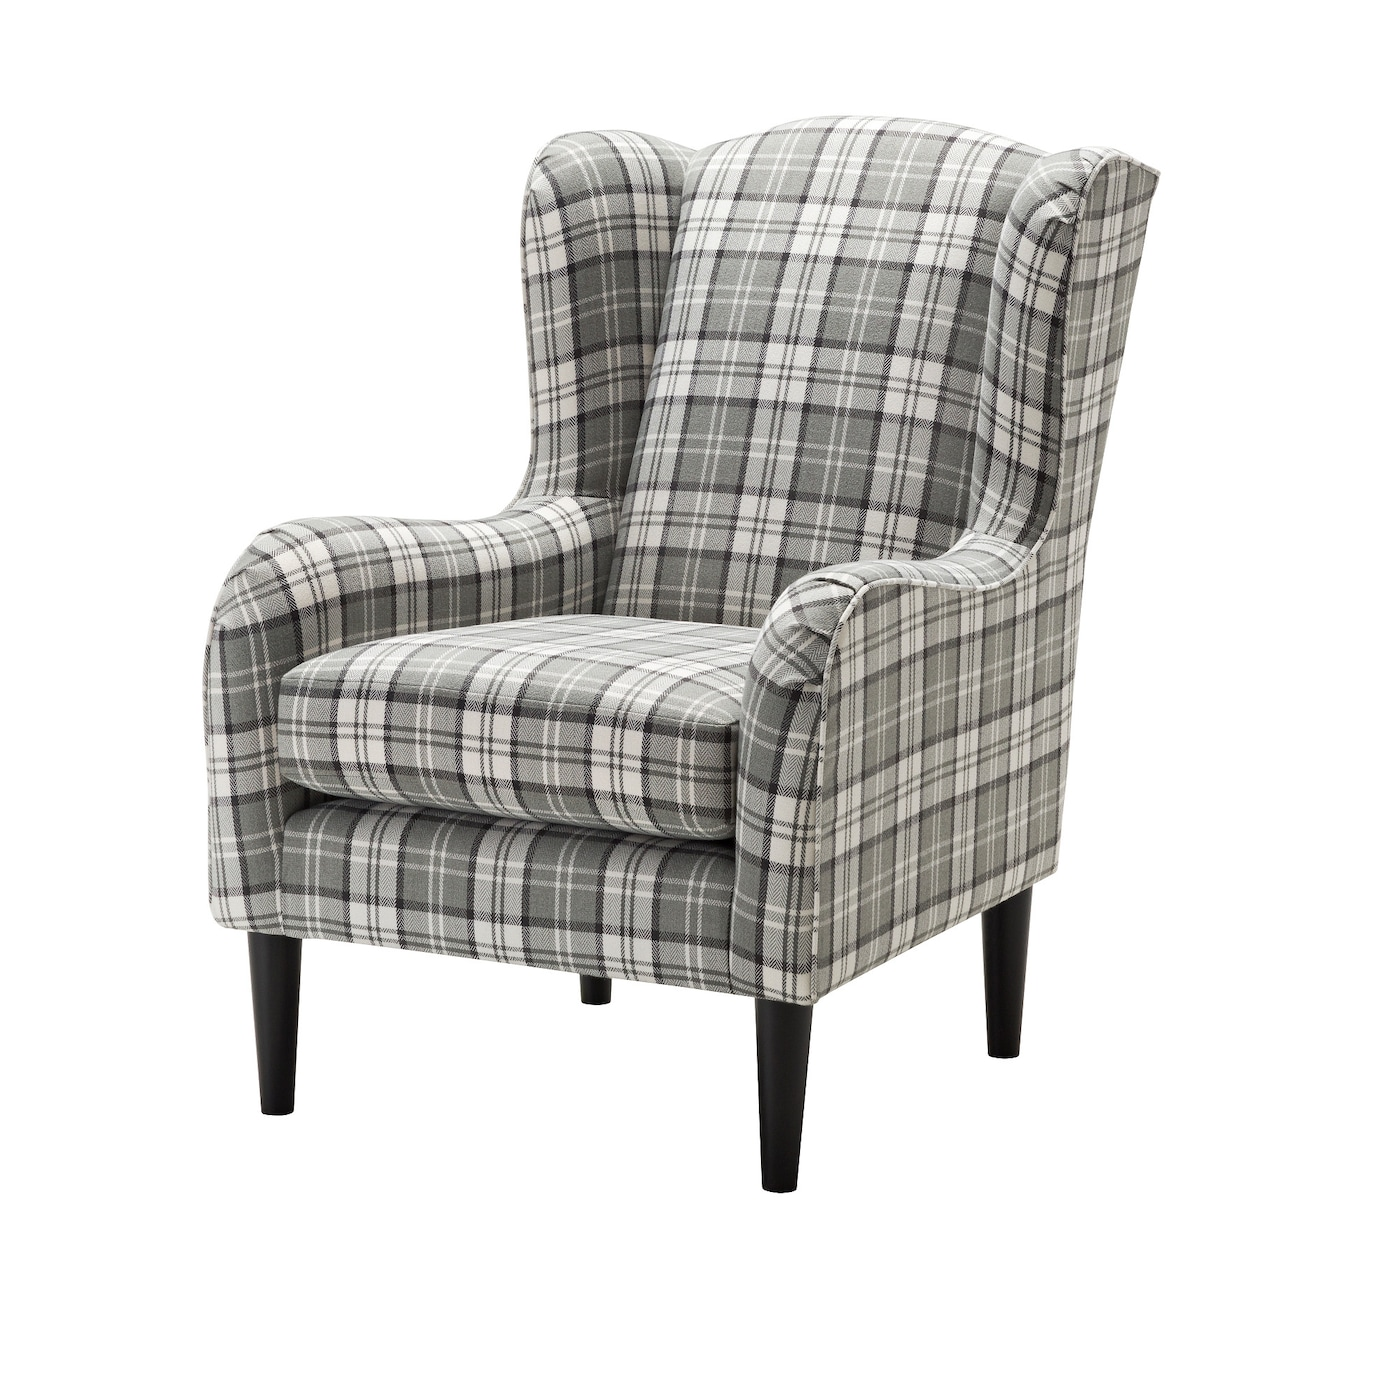 RAMSEBO Wing chair IKEA